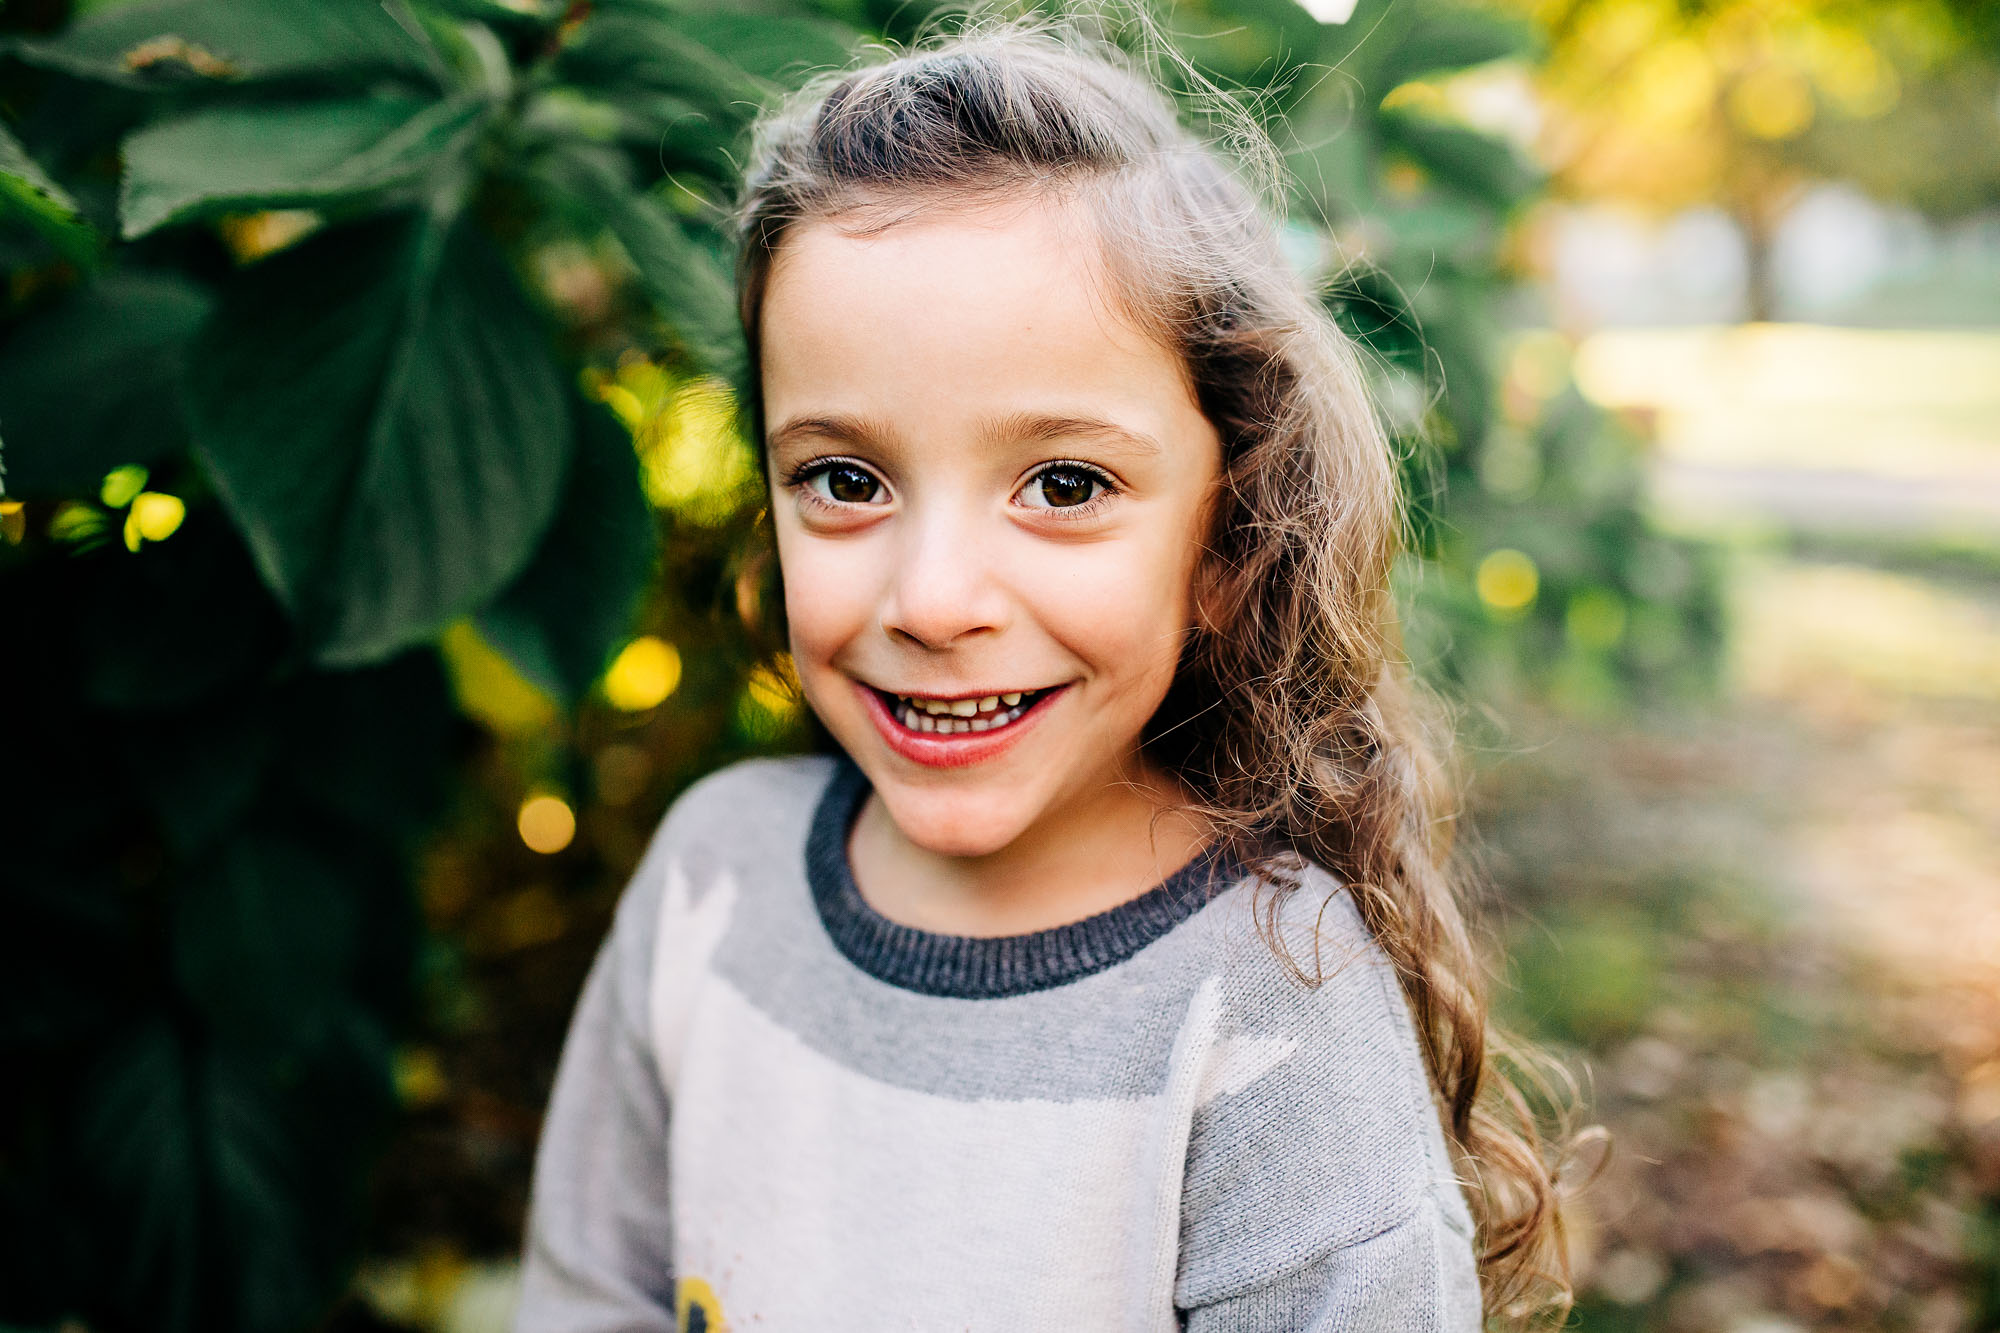 A portrait of a young girl smiling taken at Capitol Park in Sacramento, California by photographer Amy Wright.